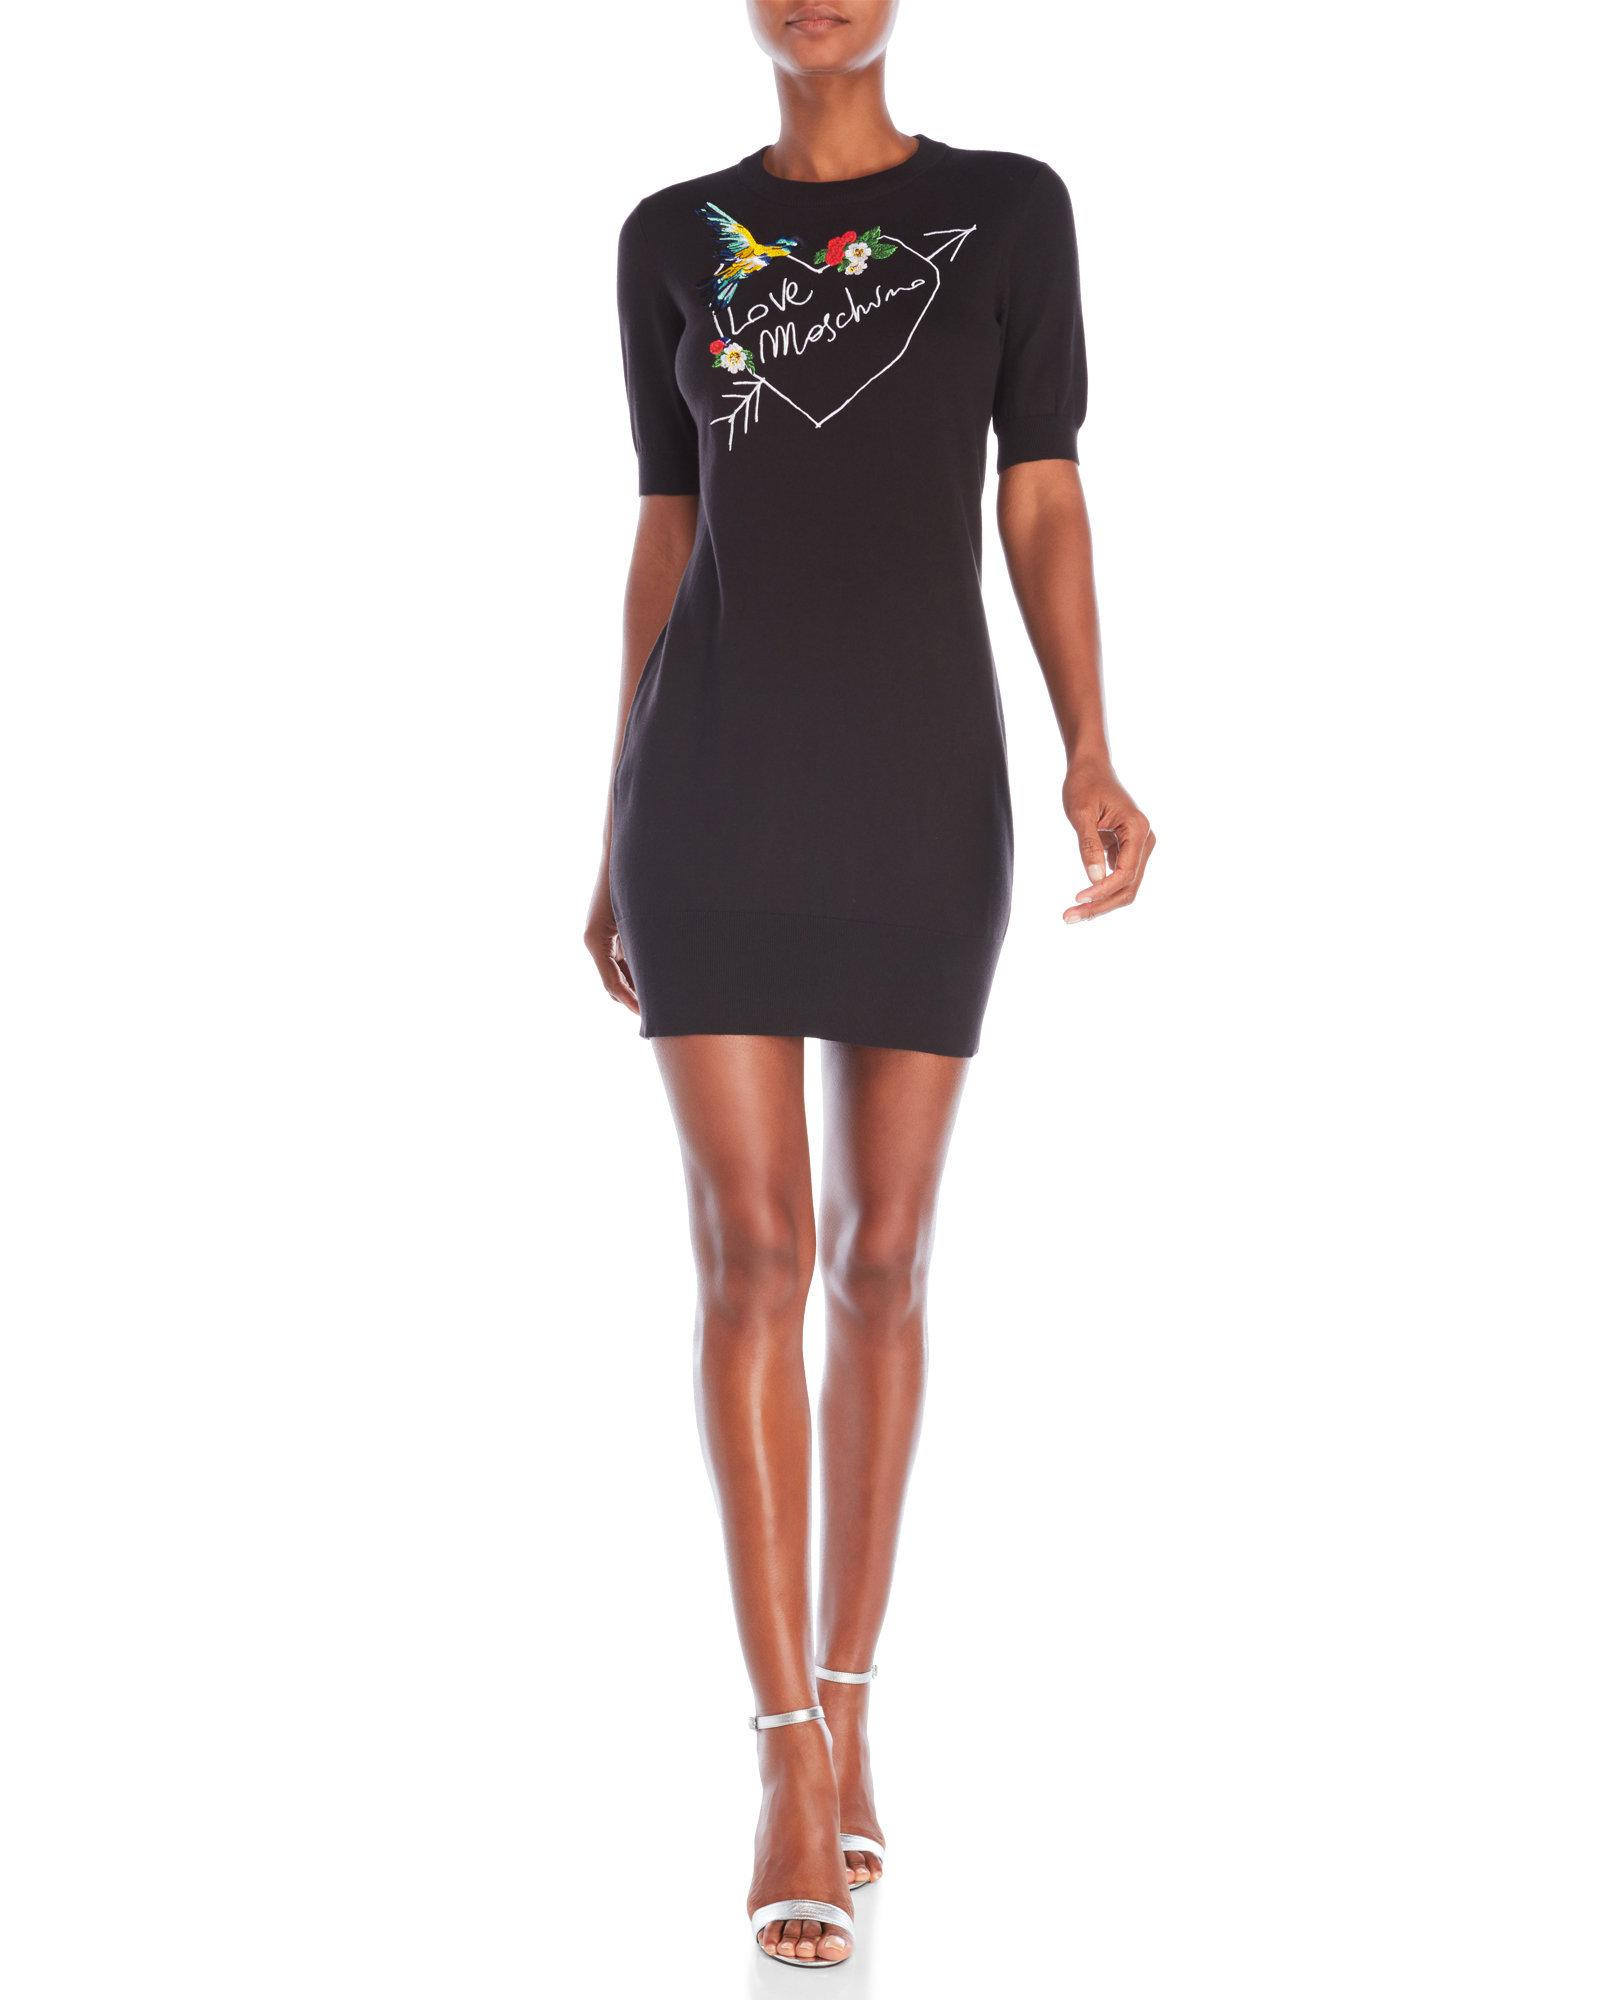 Lyst - Love Moschino Embroidered Sweater Dress in Black 0db030c57e4